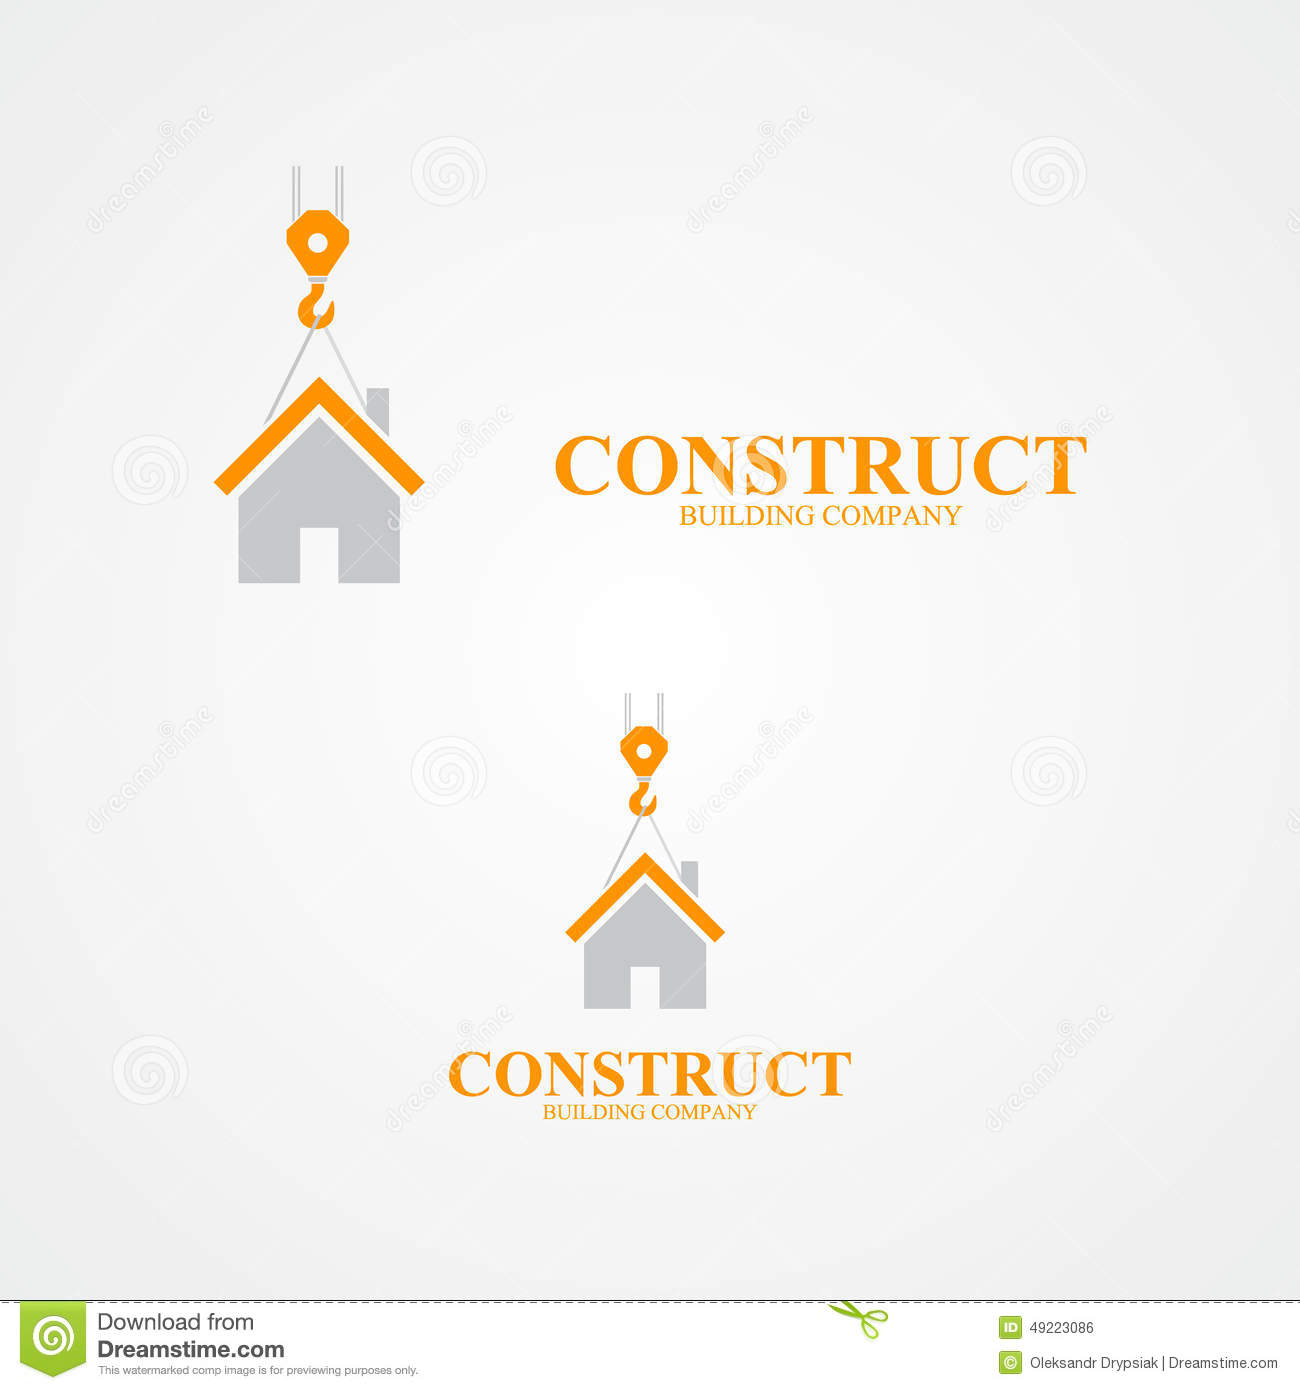 Crane logo construction company stock illustrations 104 crane logo vector logo for construction company vector logo design element with business card template royalty free colourmoves